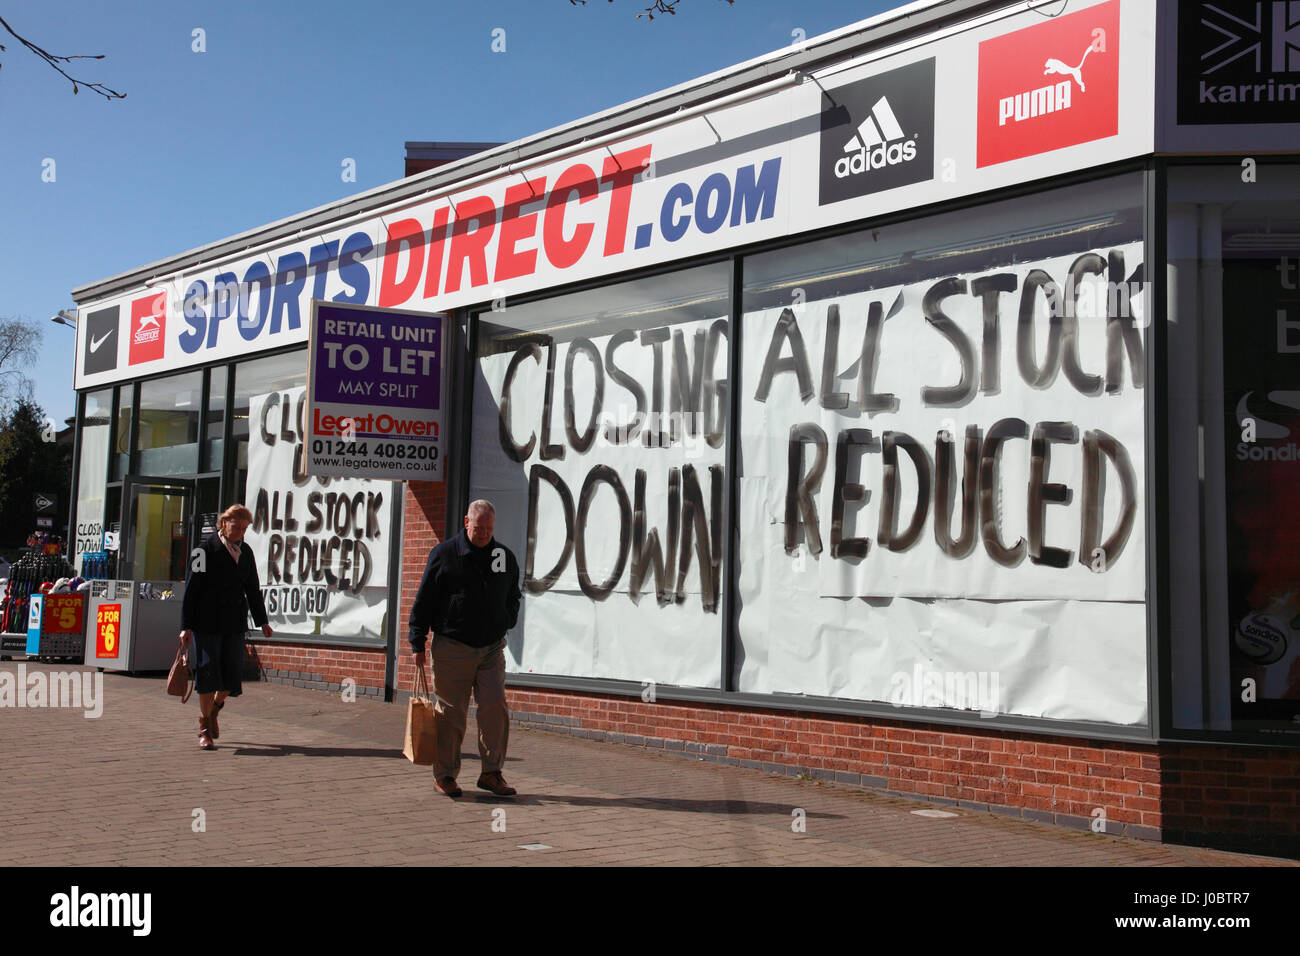 The branch of Sports Direct in the market town of Market Drayton, Shropshire, with signs showing it is about to - Stock Image